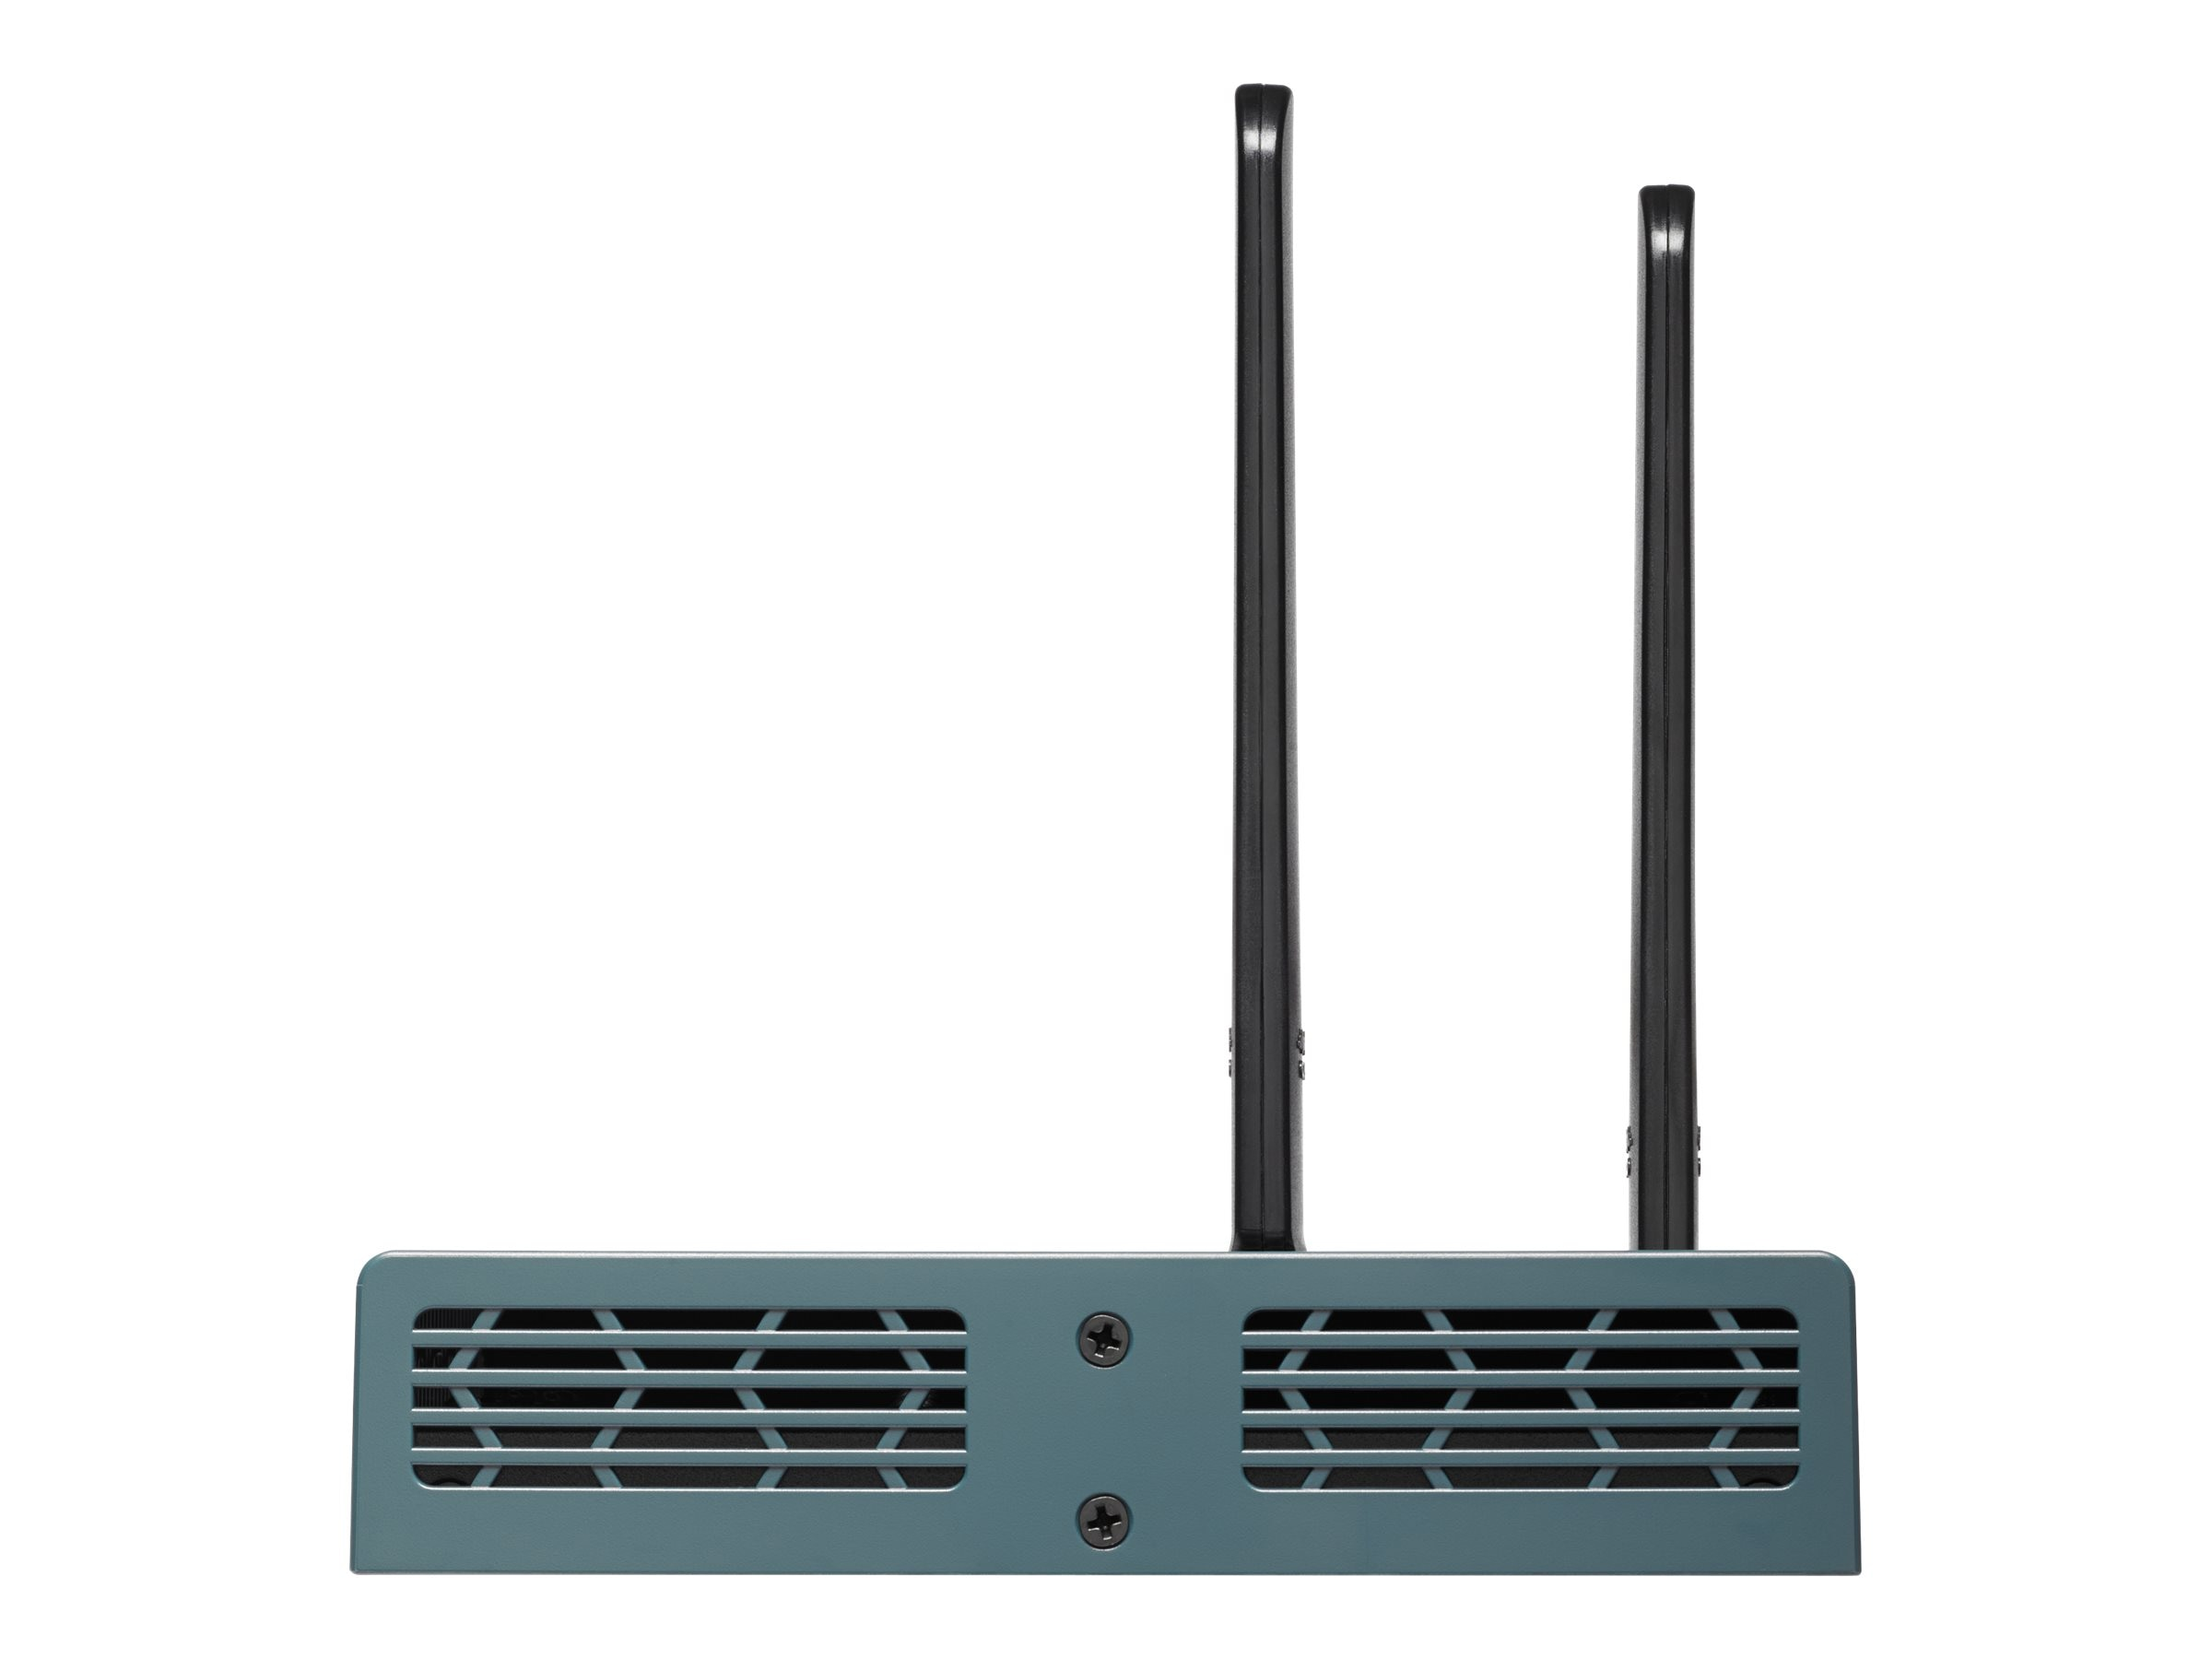 Cisco C819 M2M 4G LTE AWS 1900 1500 700, HSPA+ for ATT, Verizon & Sprint (North America), C819G-LTE-MNA-K9